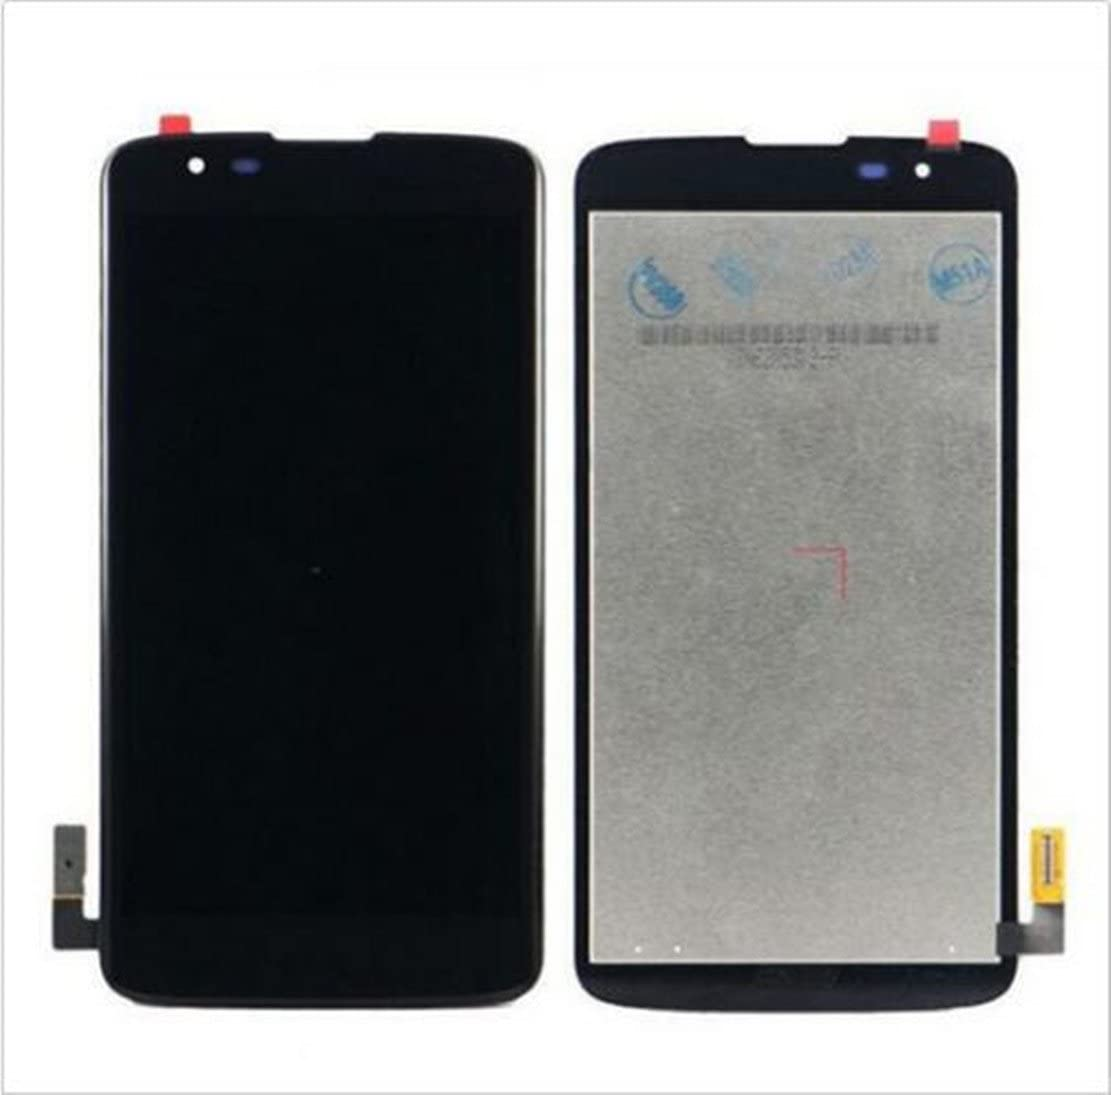 Lg Treasure Lte Tracfone K7 L52vl L51al Display Assembly Touch Screen Digitizer Lcd Amazon Ca Cell Phones Accessories